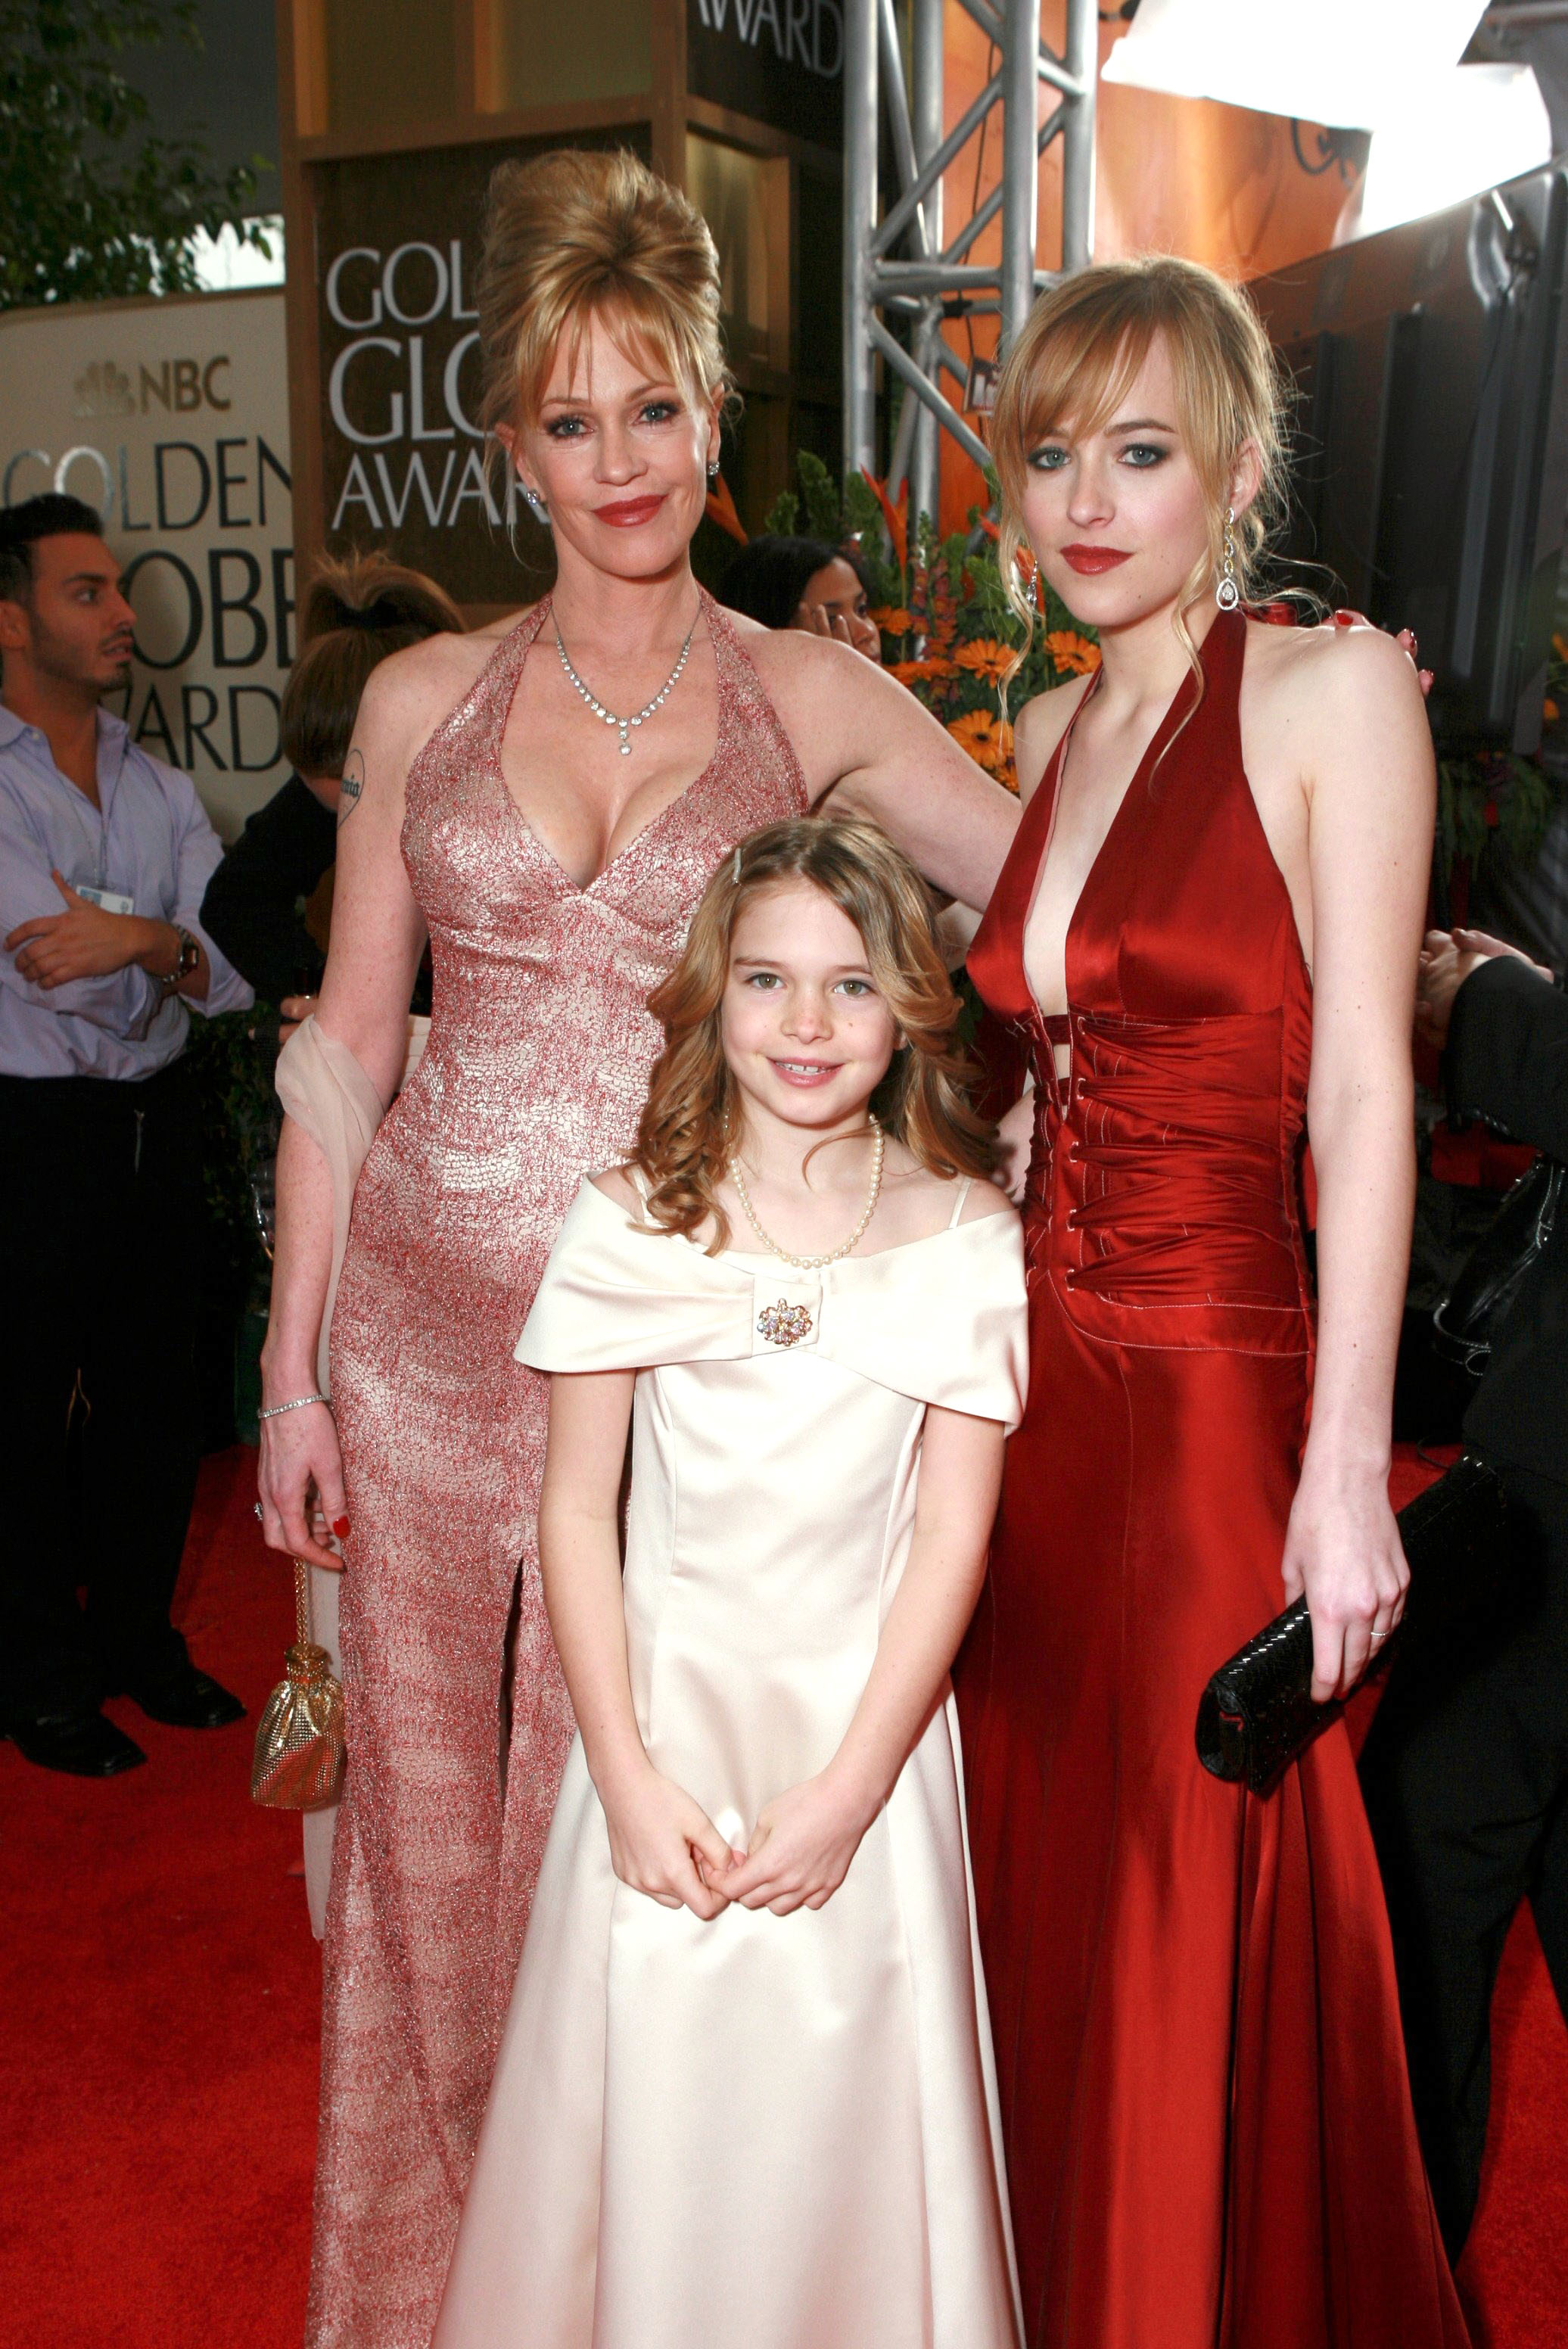 Melanie Griffith with daughters Dakota Johnson and Stella BanderasMOET AND CHANDON CHAMPAGNE RECEPTION FOR ARRIVALS AT THE 63RD ANNUAL GOLDEN GLOBE AWARDS, LOS ANGELES, AMERICA - 16 JAN 2006